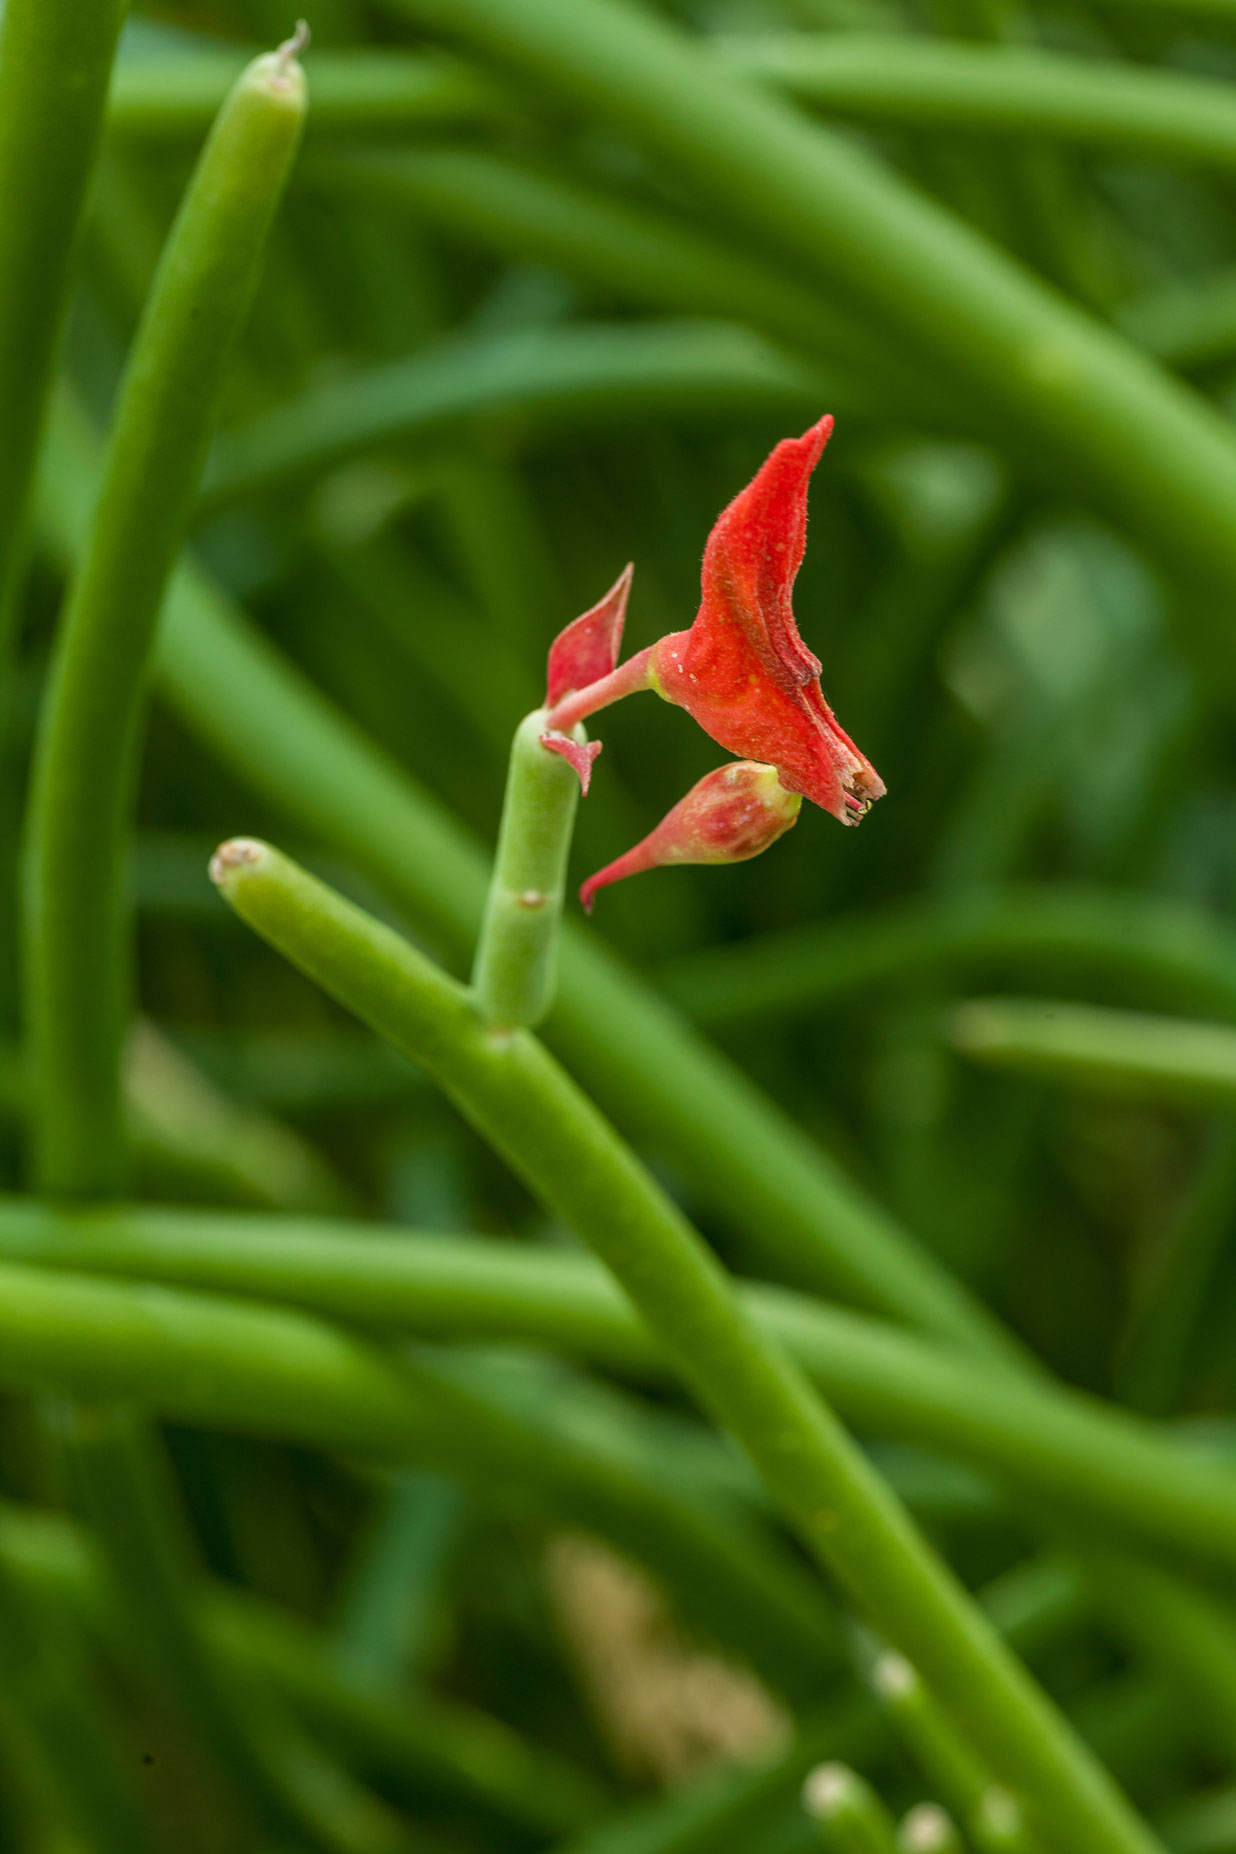 A close-up of the red triangular bloom of a Slipper Flower.